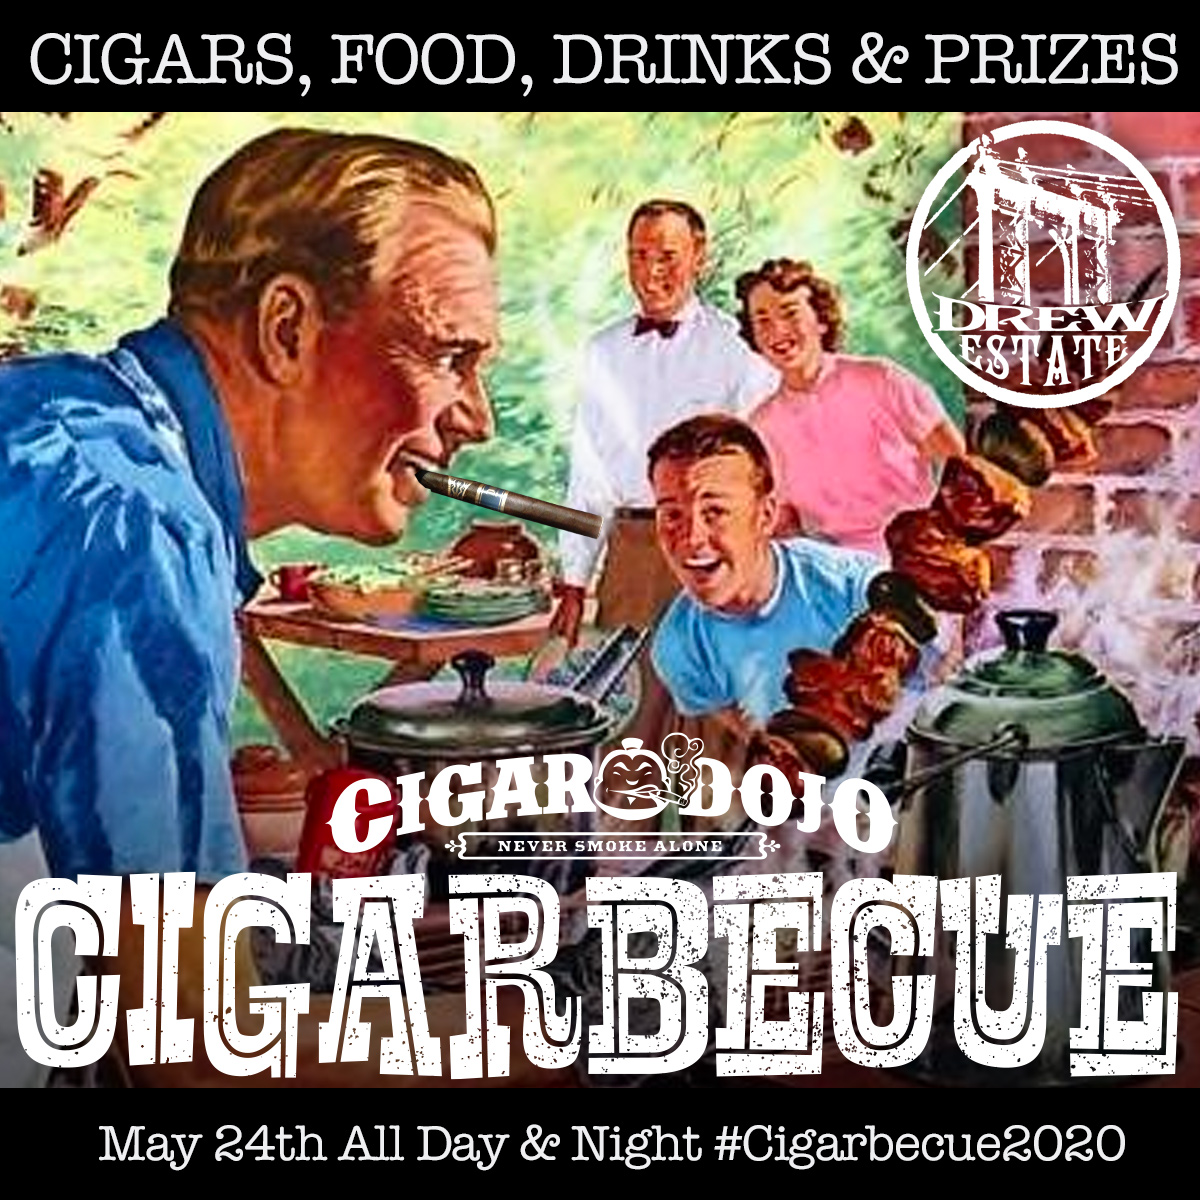 Cigarbecue Drew Estate